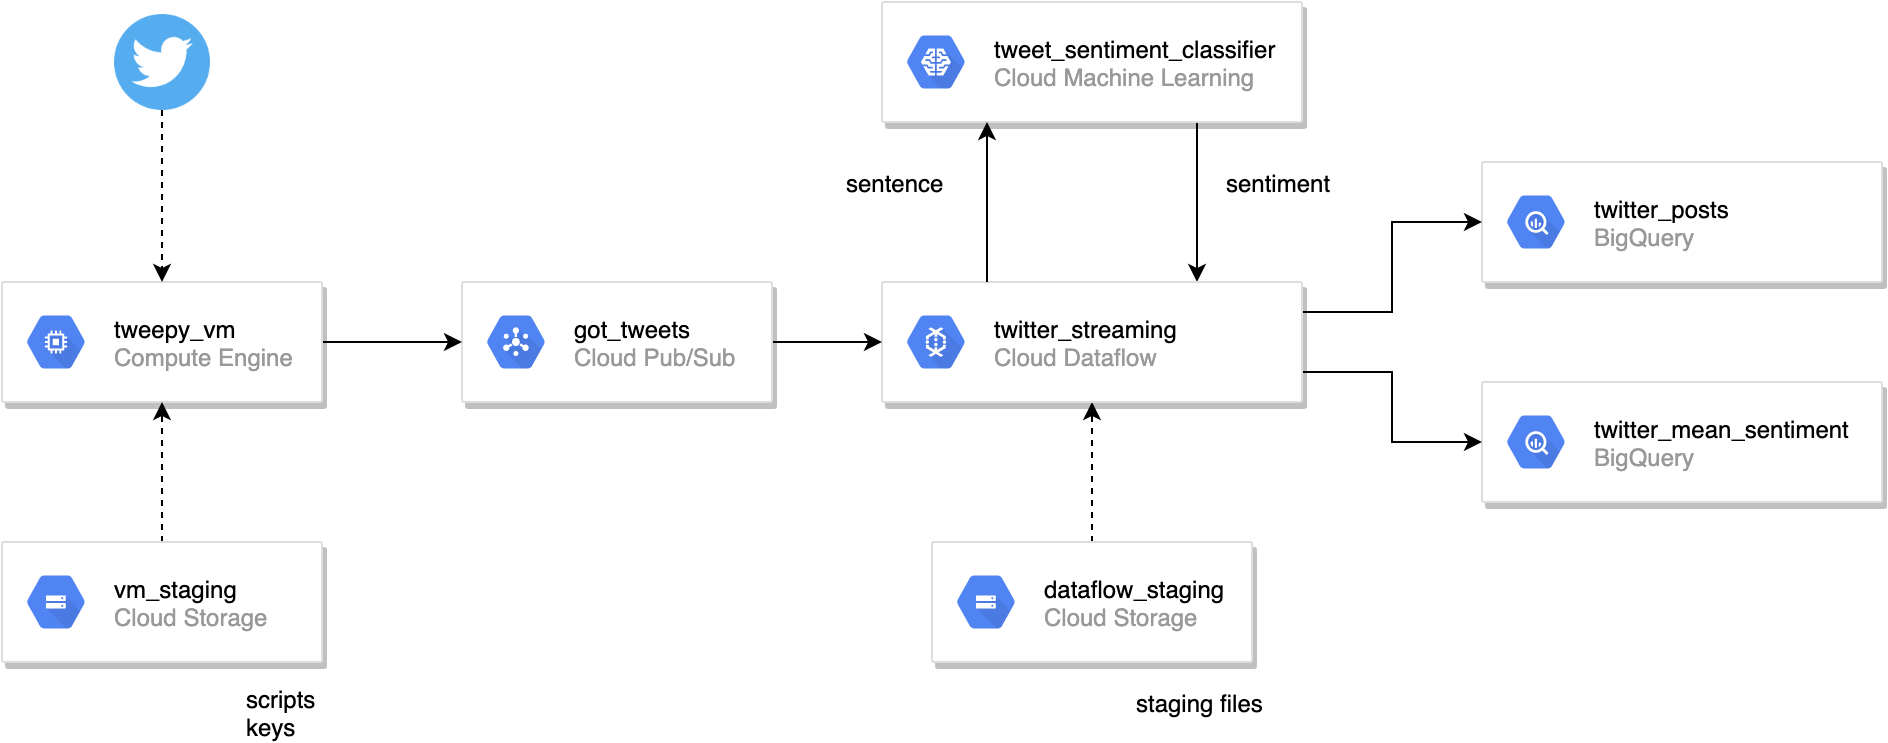 Game of Thrones Twitter Sentiment with Google Cloud Platform